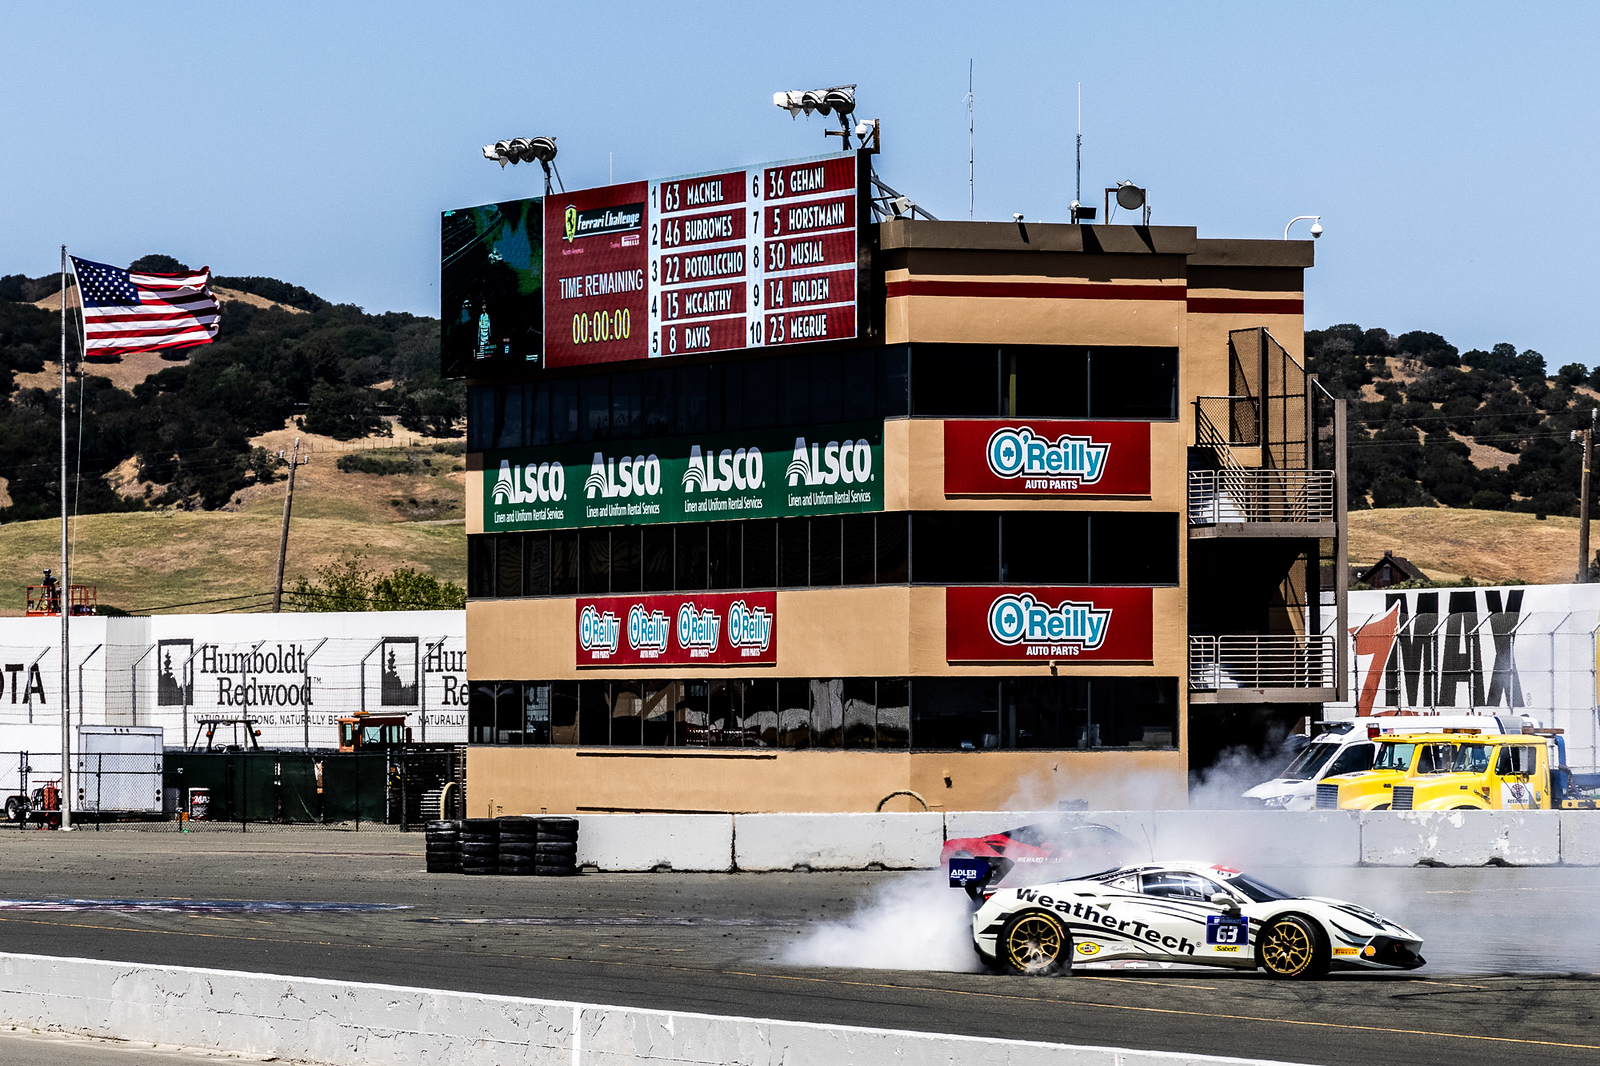 Donuts on the track.